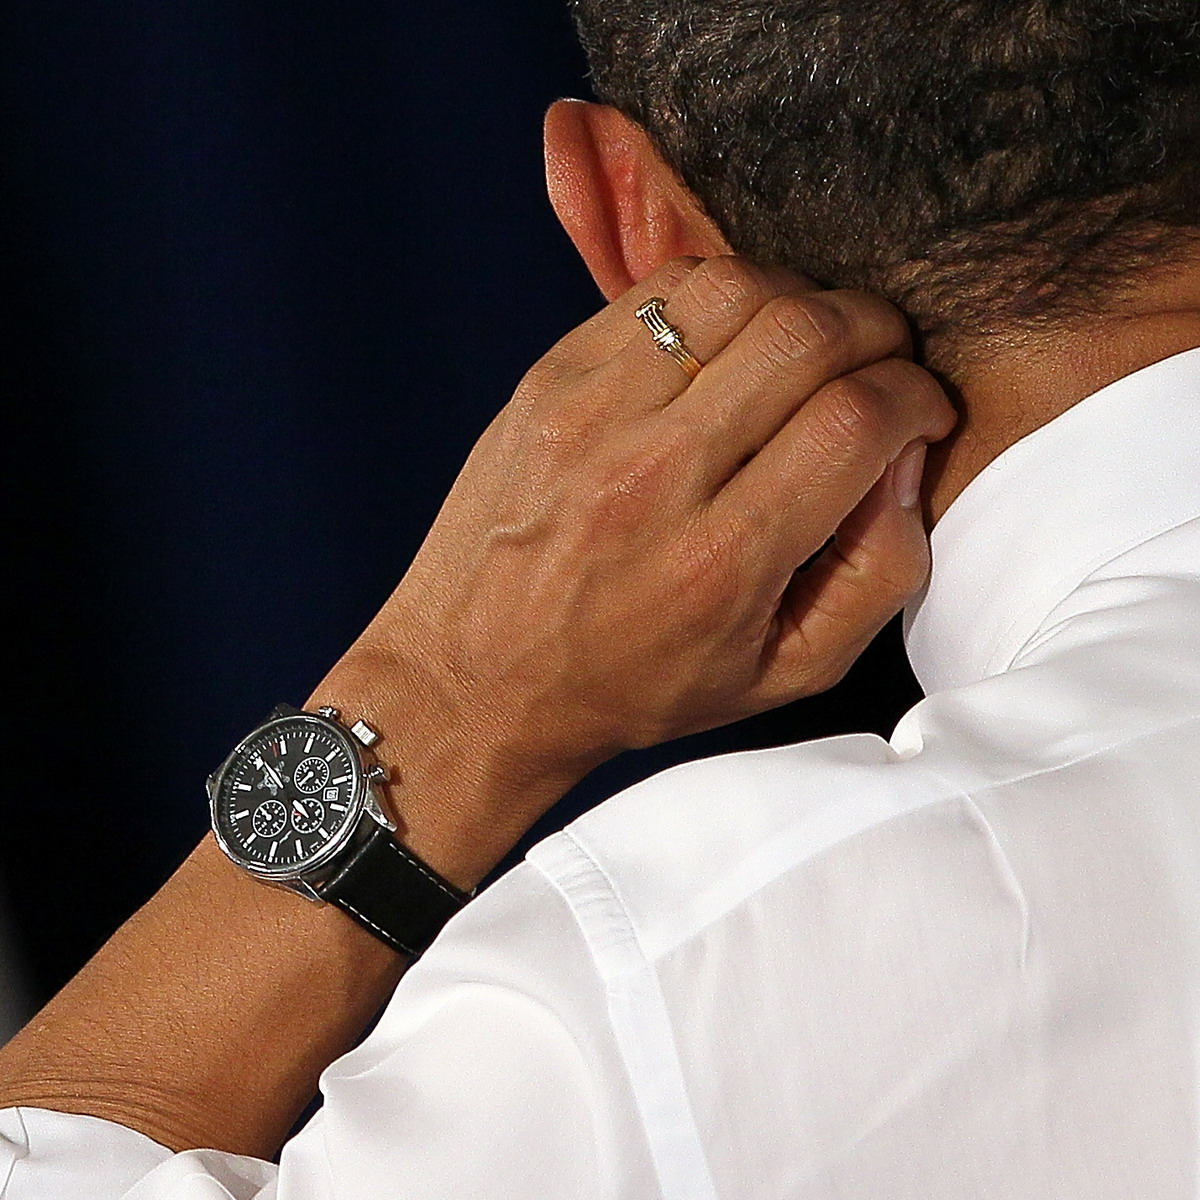 Obama Wearing Jorg Gray JG6500 Chronograph